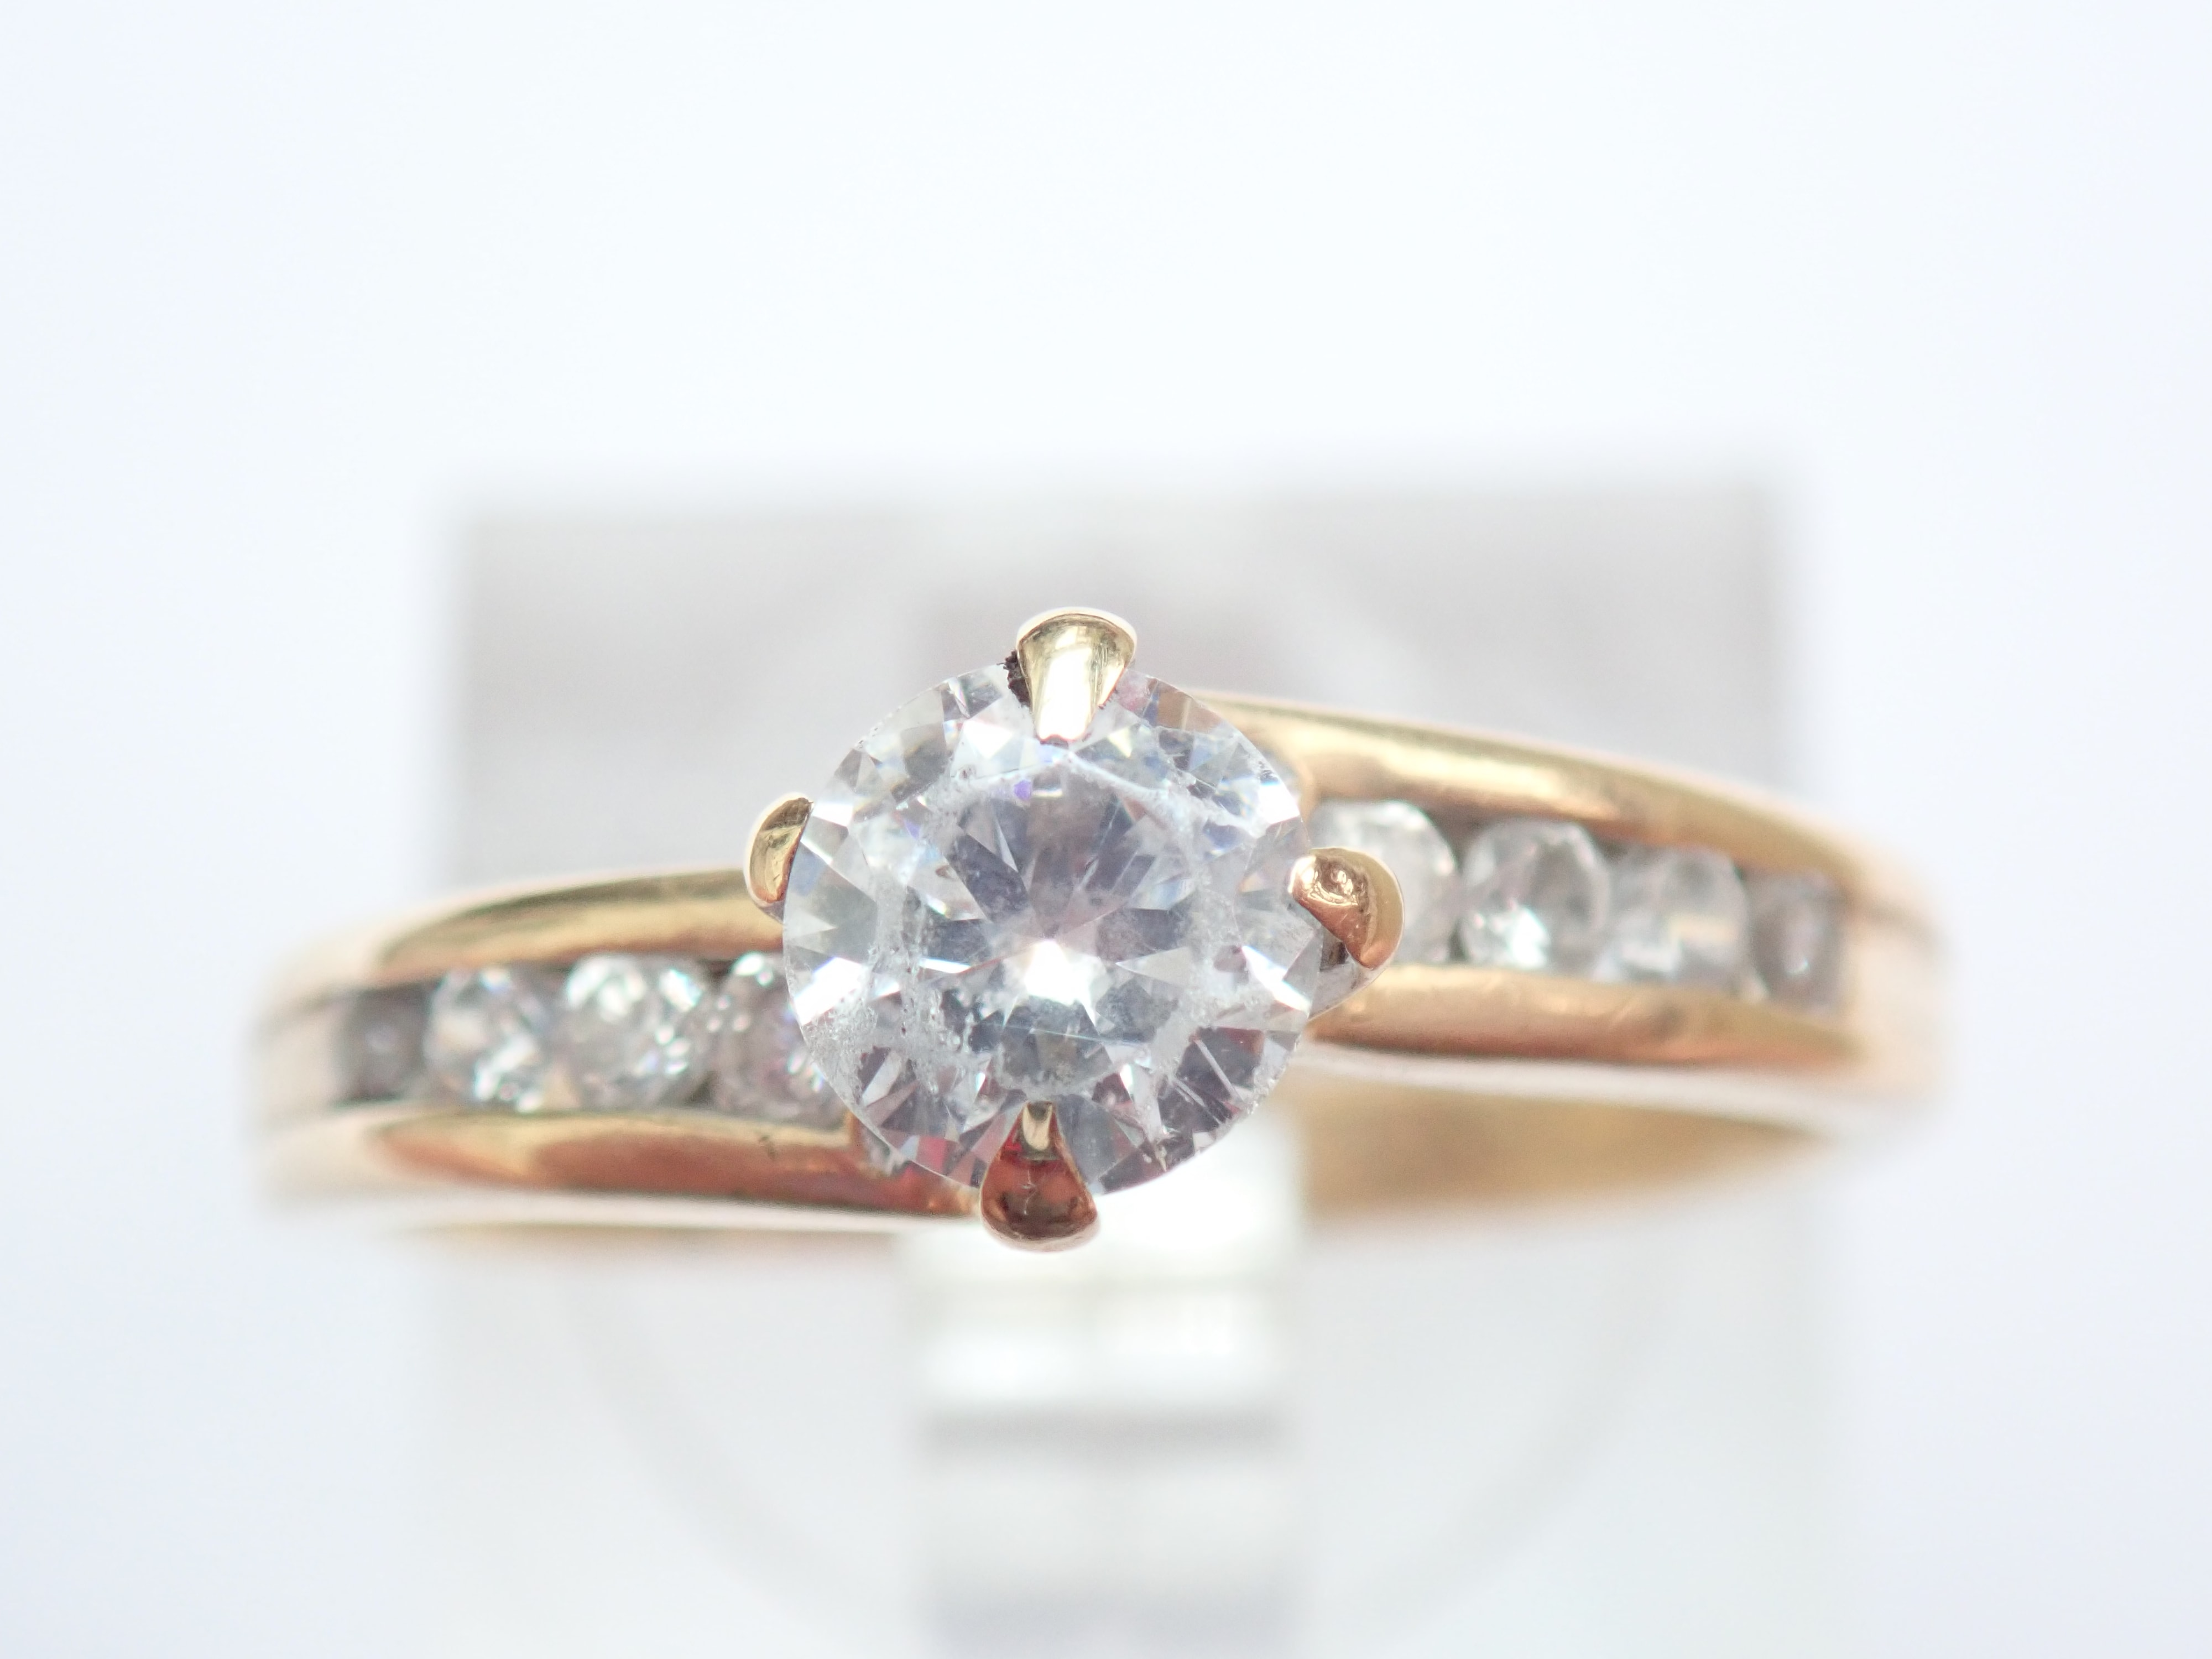 0.75 carat Cubic Zirconia 375 Gold Solitaire Ring & 8x side stones Size O #50